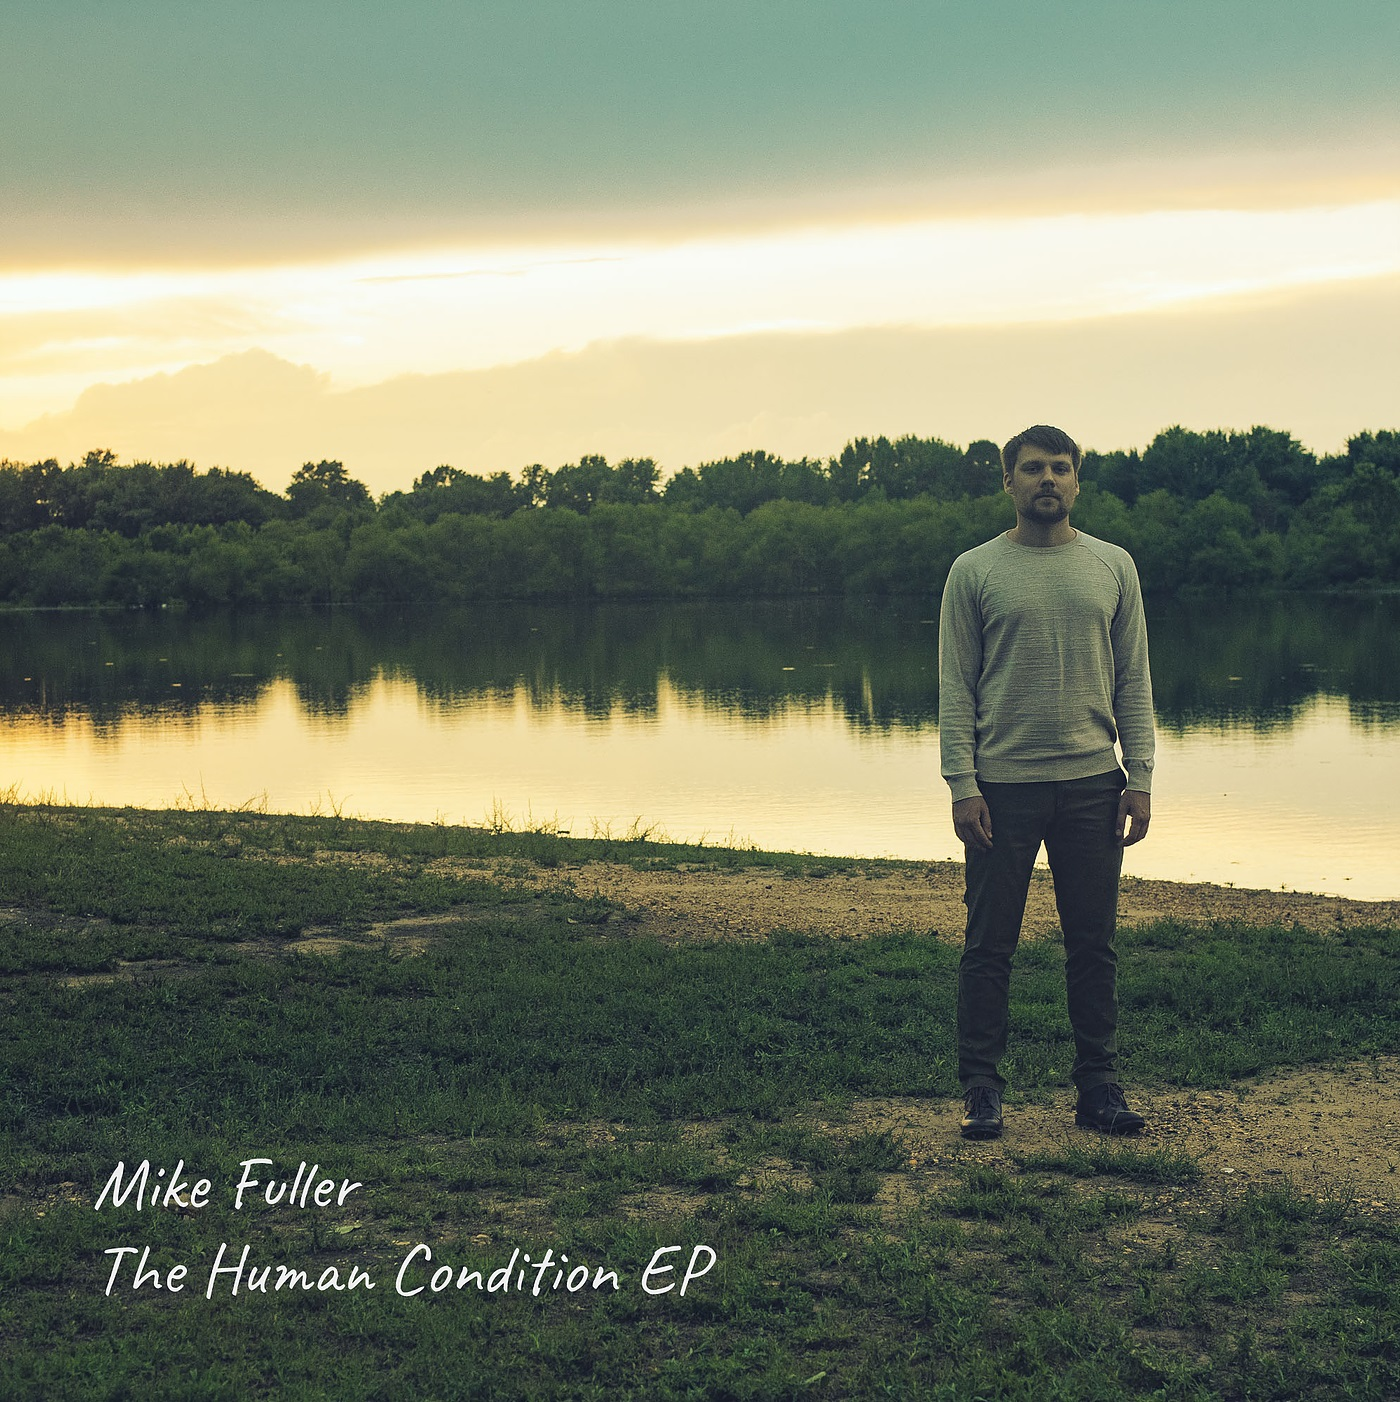 Mike Fuller Launches 'The Human Condition EP'